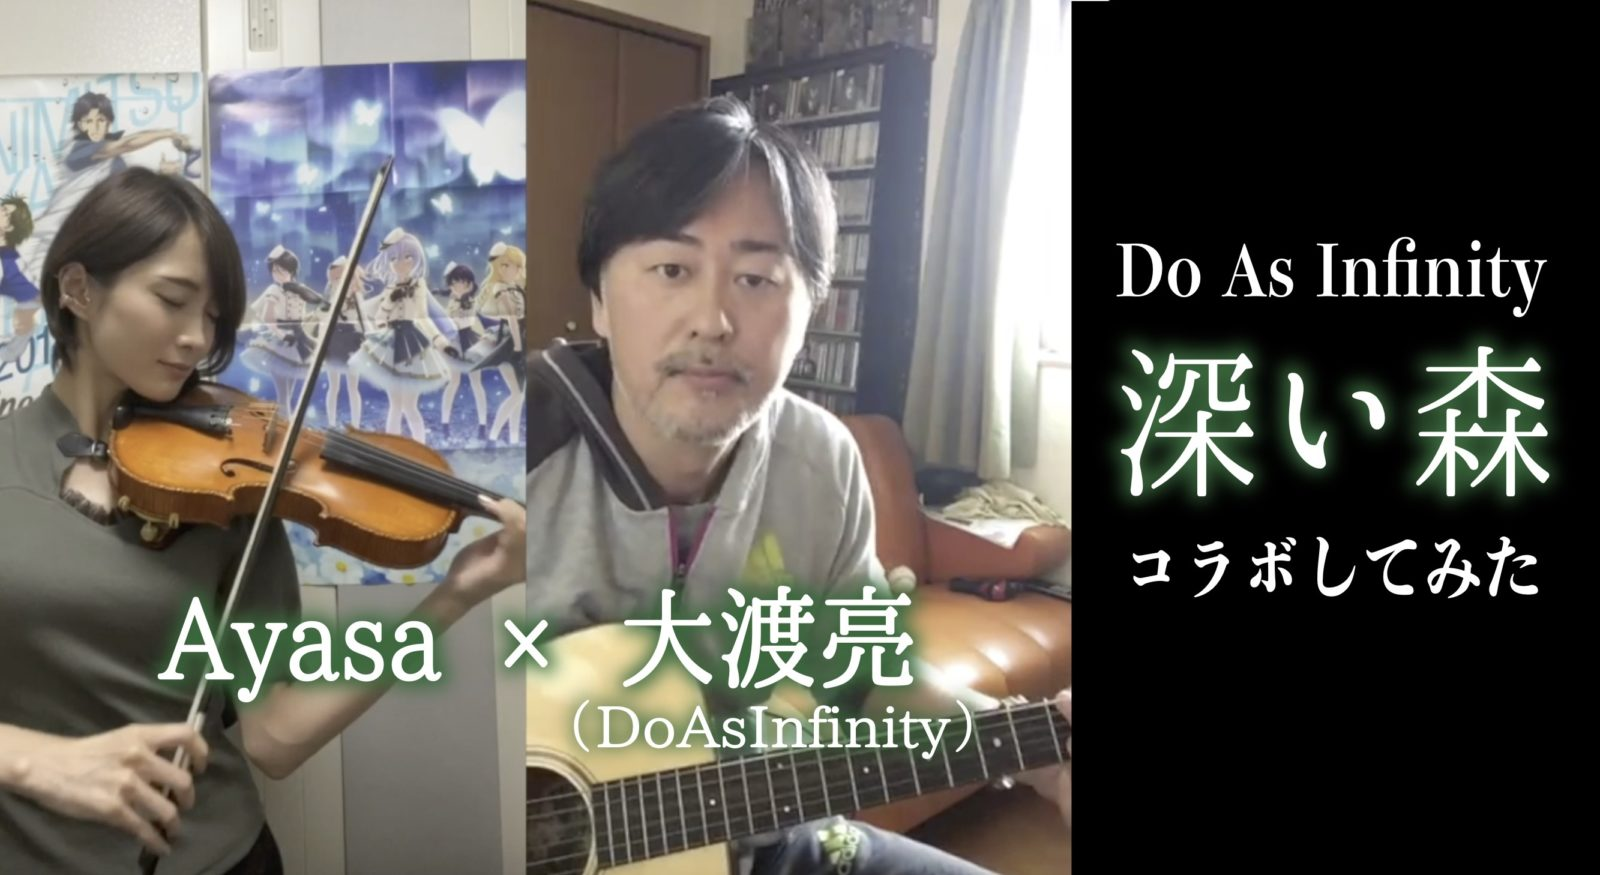 Do As Infinity 大渡亮のStay Home企画にAyasaが参加サムネイル画像